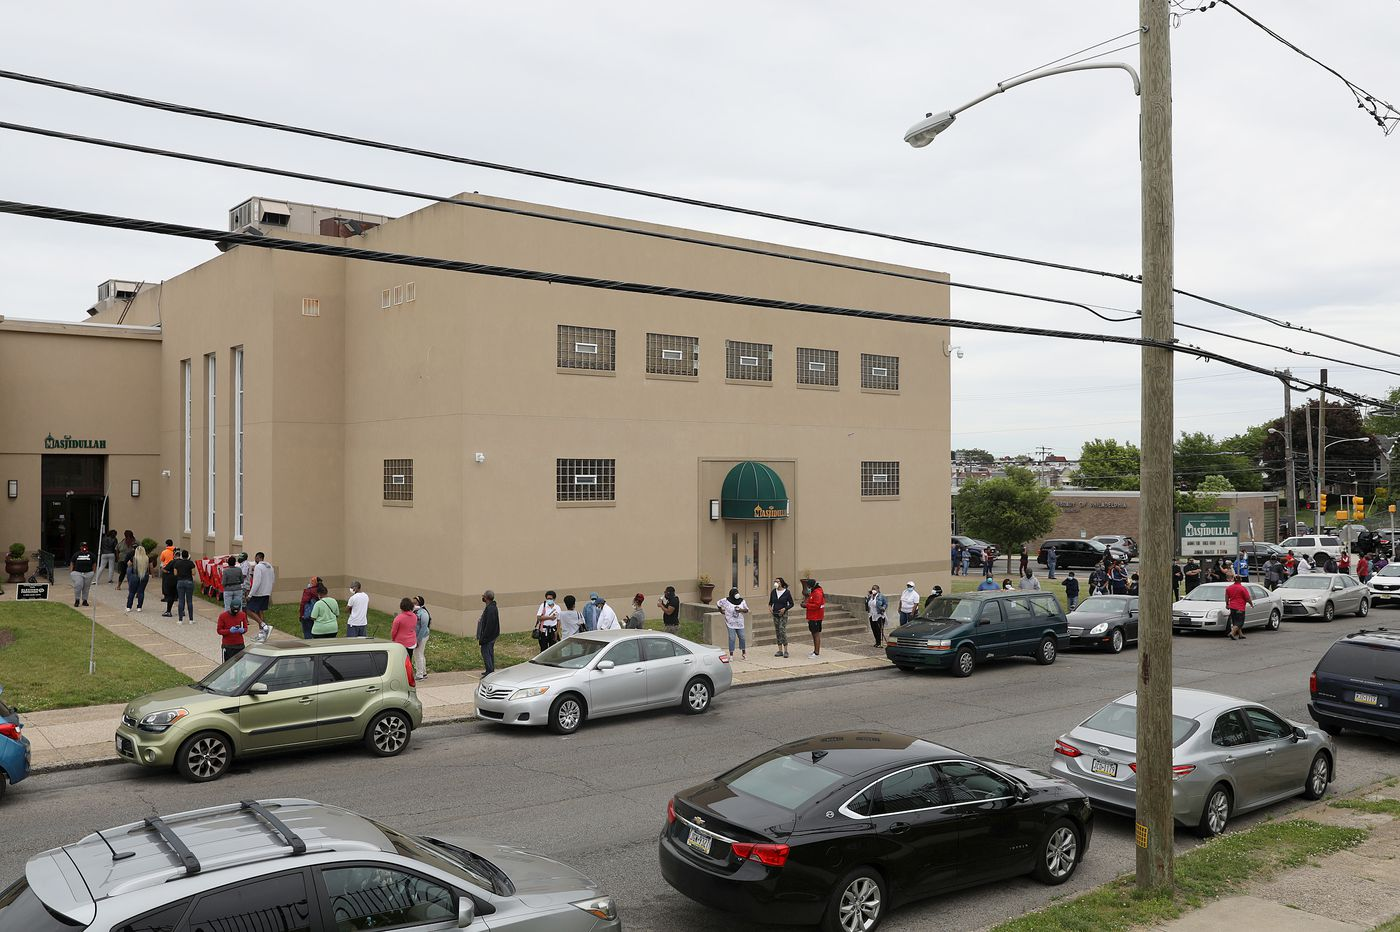 Polling locations in Northwest Philly got the wrong voting machines, causing confusion and long lines: 'It was a mess'